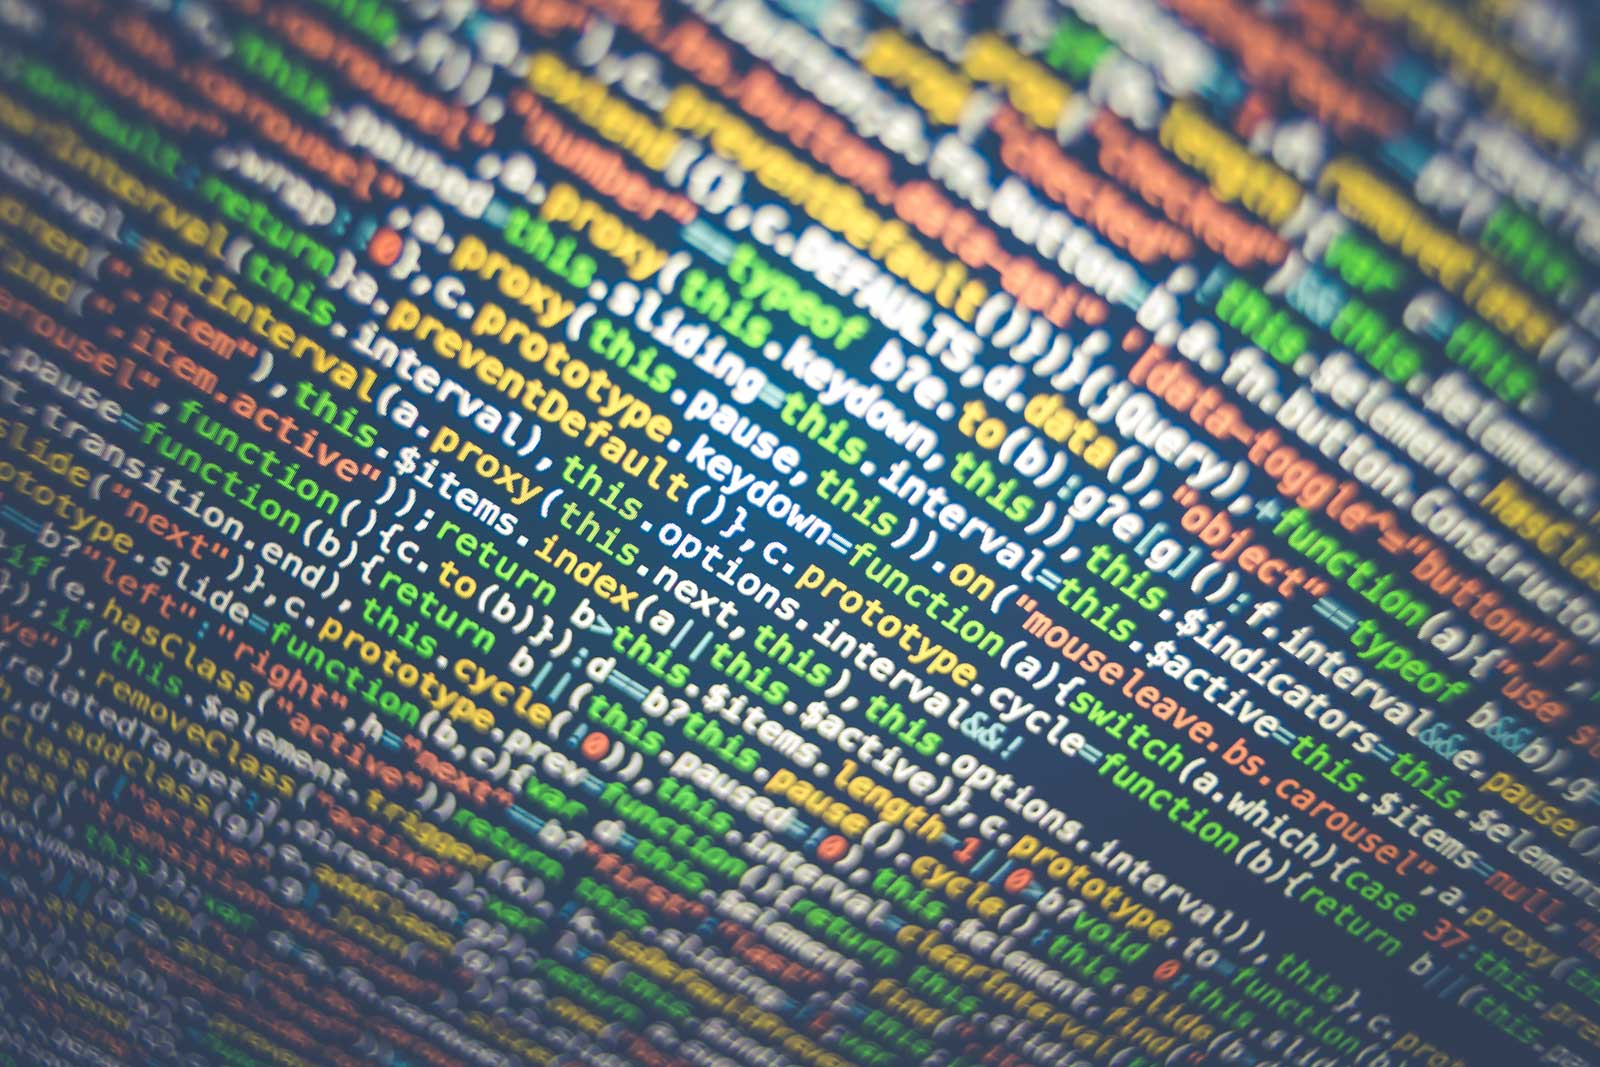 Big data leading to privacy breaches – whose responsibility is it?